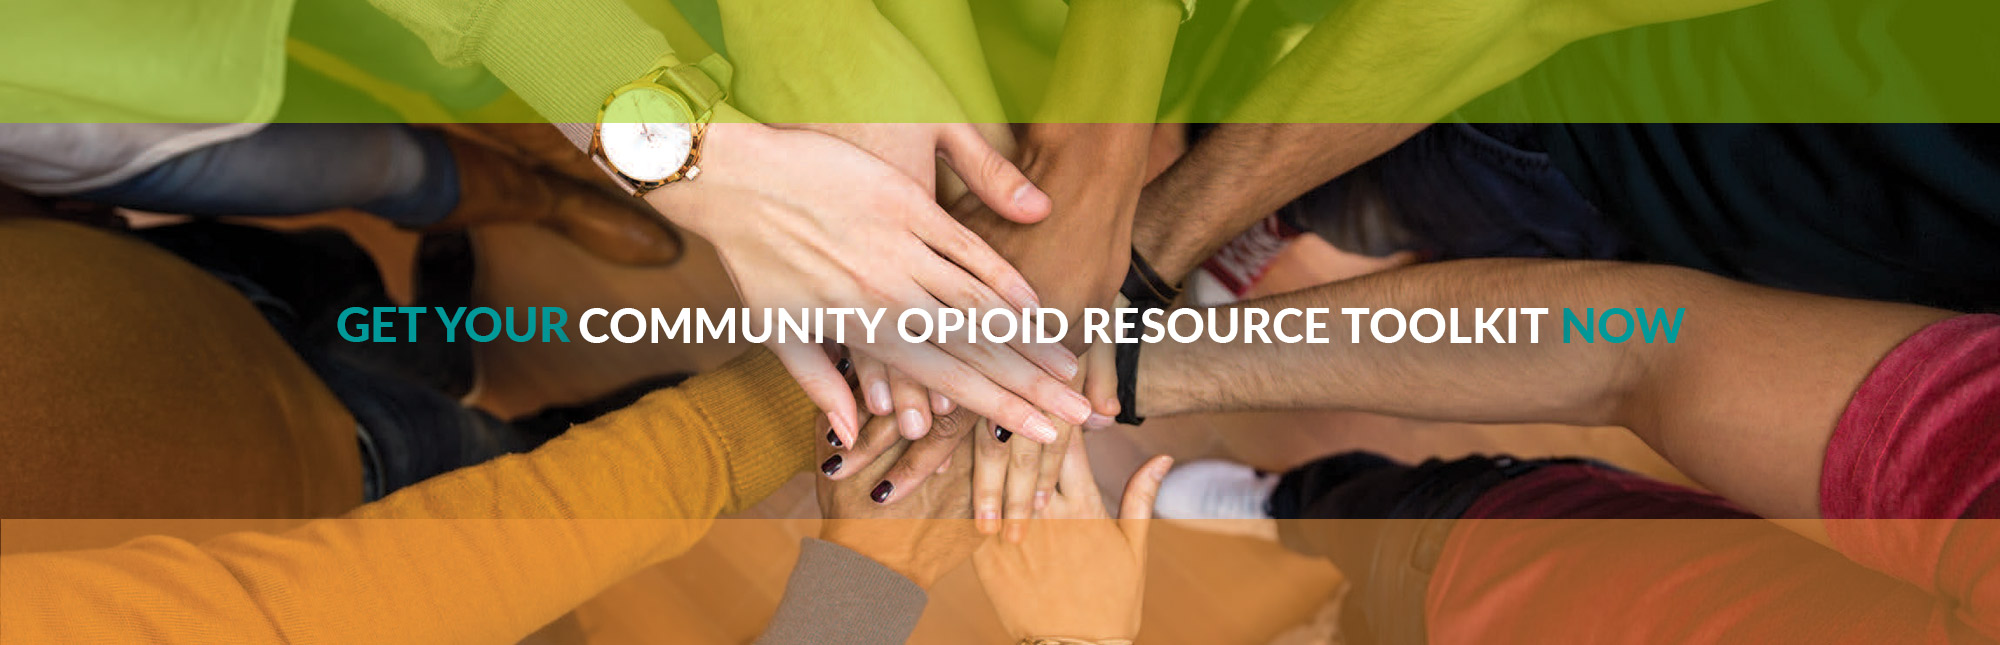 Get Your Community Opioid Toolkit Now